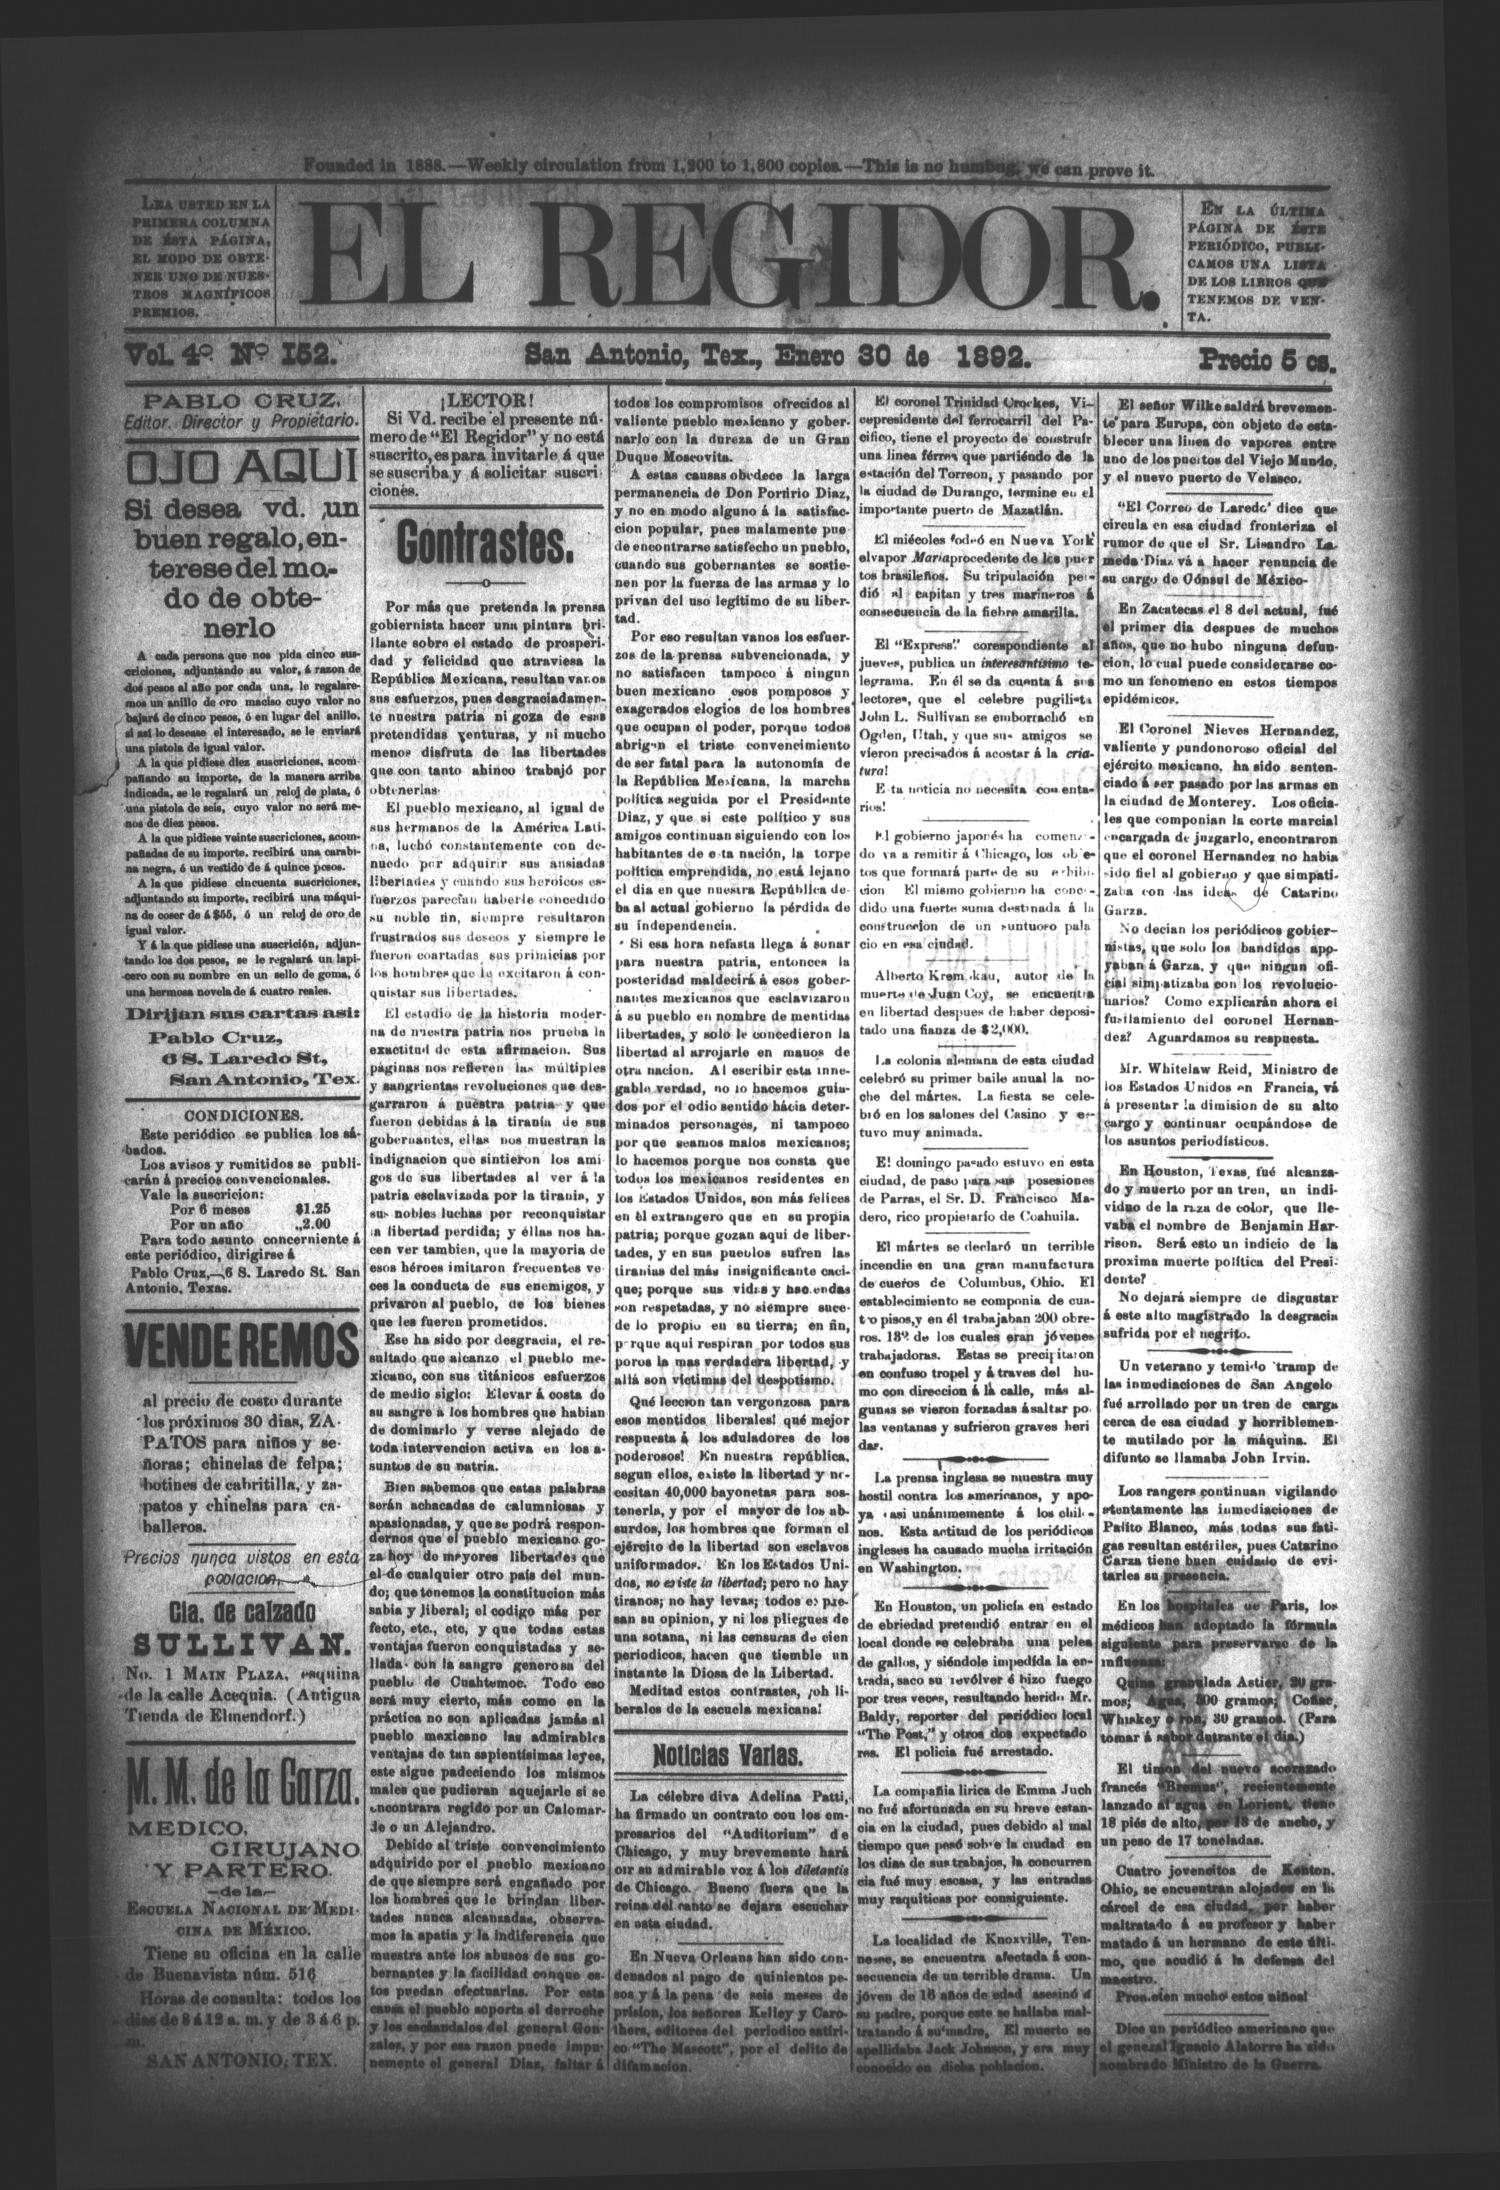 El Regidor. (San Antonio, Tex.), Vol. 4, No. 152, Ed. 1 Saturday, January 30, 1892                                                                                                      [Sequence #]: 1 of 4